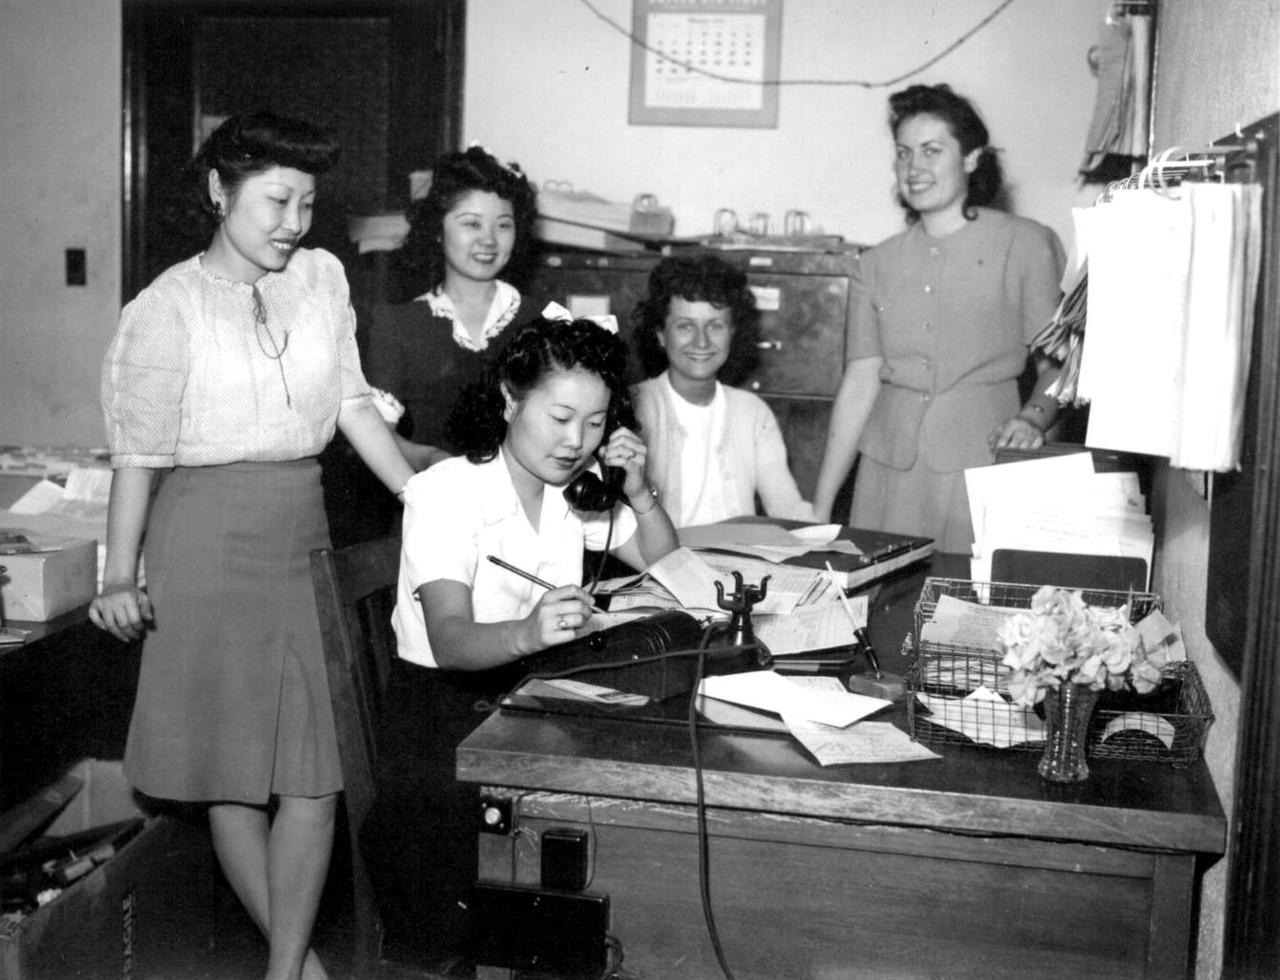 "fuckyeahapihistory:  Mary Kitano from Manzanar and her fellow-workers on the staff of the City News Service, 1945. Mary Kitano just received a $25 check from Readers Digest for a picturesque patter item, and also has a commission to write for Now magazine. City News Service has 15 reporters, covering metropolitan Los Angeles for nearby small-city papers. Photographer: Mace, Charles E. Los Angeles, California. 5/14/45  A 2007 interview with Mary Kitano and her husband, Doug Diltz, plus more photos. PIONEERING ASIAN-AMERICAN JOURNALIST MARY KITANO left a life of incarceration and displacement at Manzanar ""Relocation Camp"" in World War II to return to Los Angeles, where she worked for City News Service, the Daily News, and eventually KNX Newsradio. She and her husband, veteran L.A. wire service journalist Doug Diltz, met when Mary worked in the Daily News libary, and Doug worked for United Press, which was just down the hall in the old Daily News building at Pico and Los Angeles Streets."